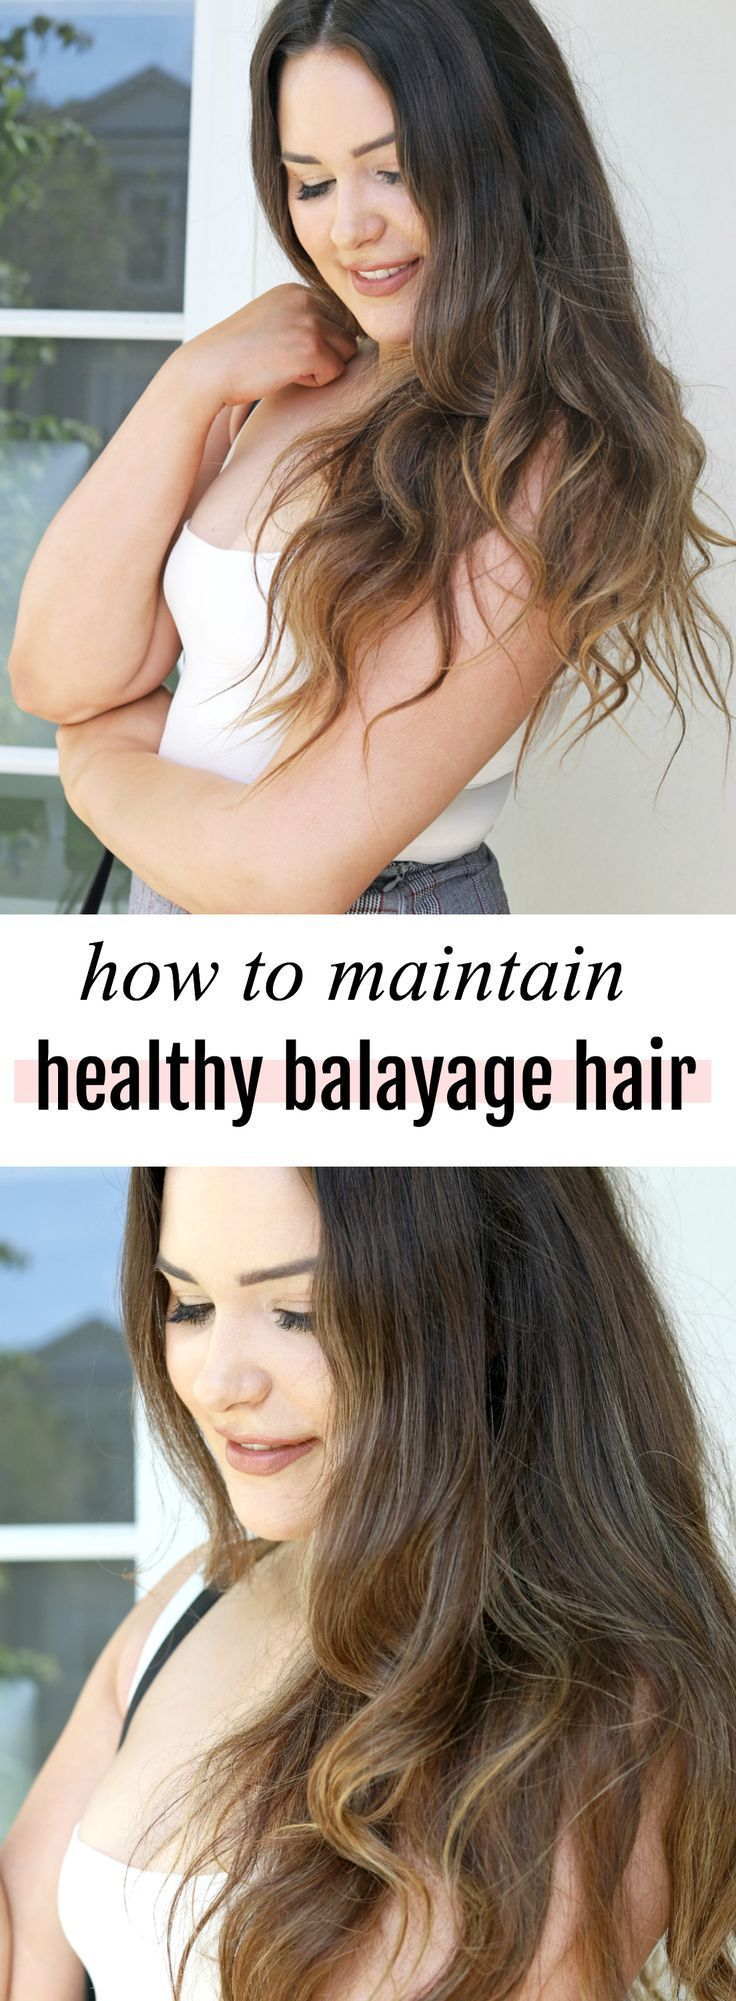 Beauty blogger Michelle Kehoe of Mash Elle shares easy, fast tips to grow long, healthy hair. Bleached hair can become damaged easily, so this guide will help you keep ombre, balayage, highlighted and colored hair long and healthy! #balayage #partialbalay